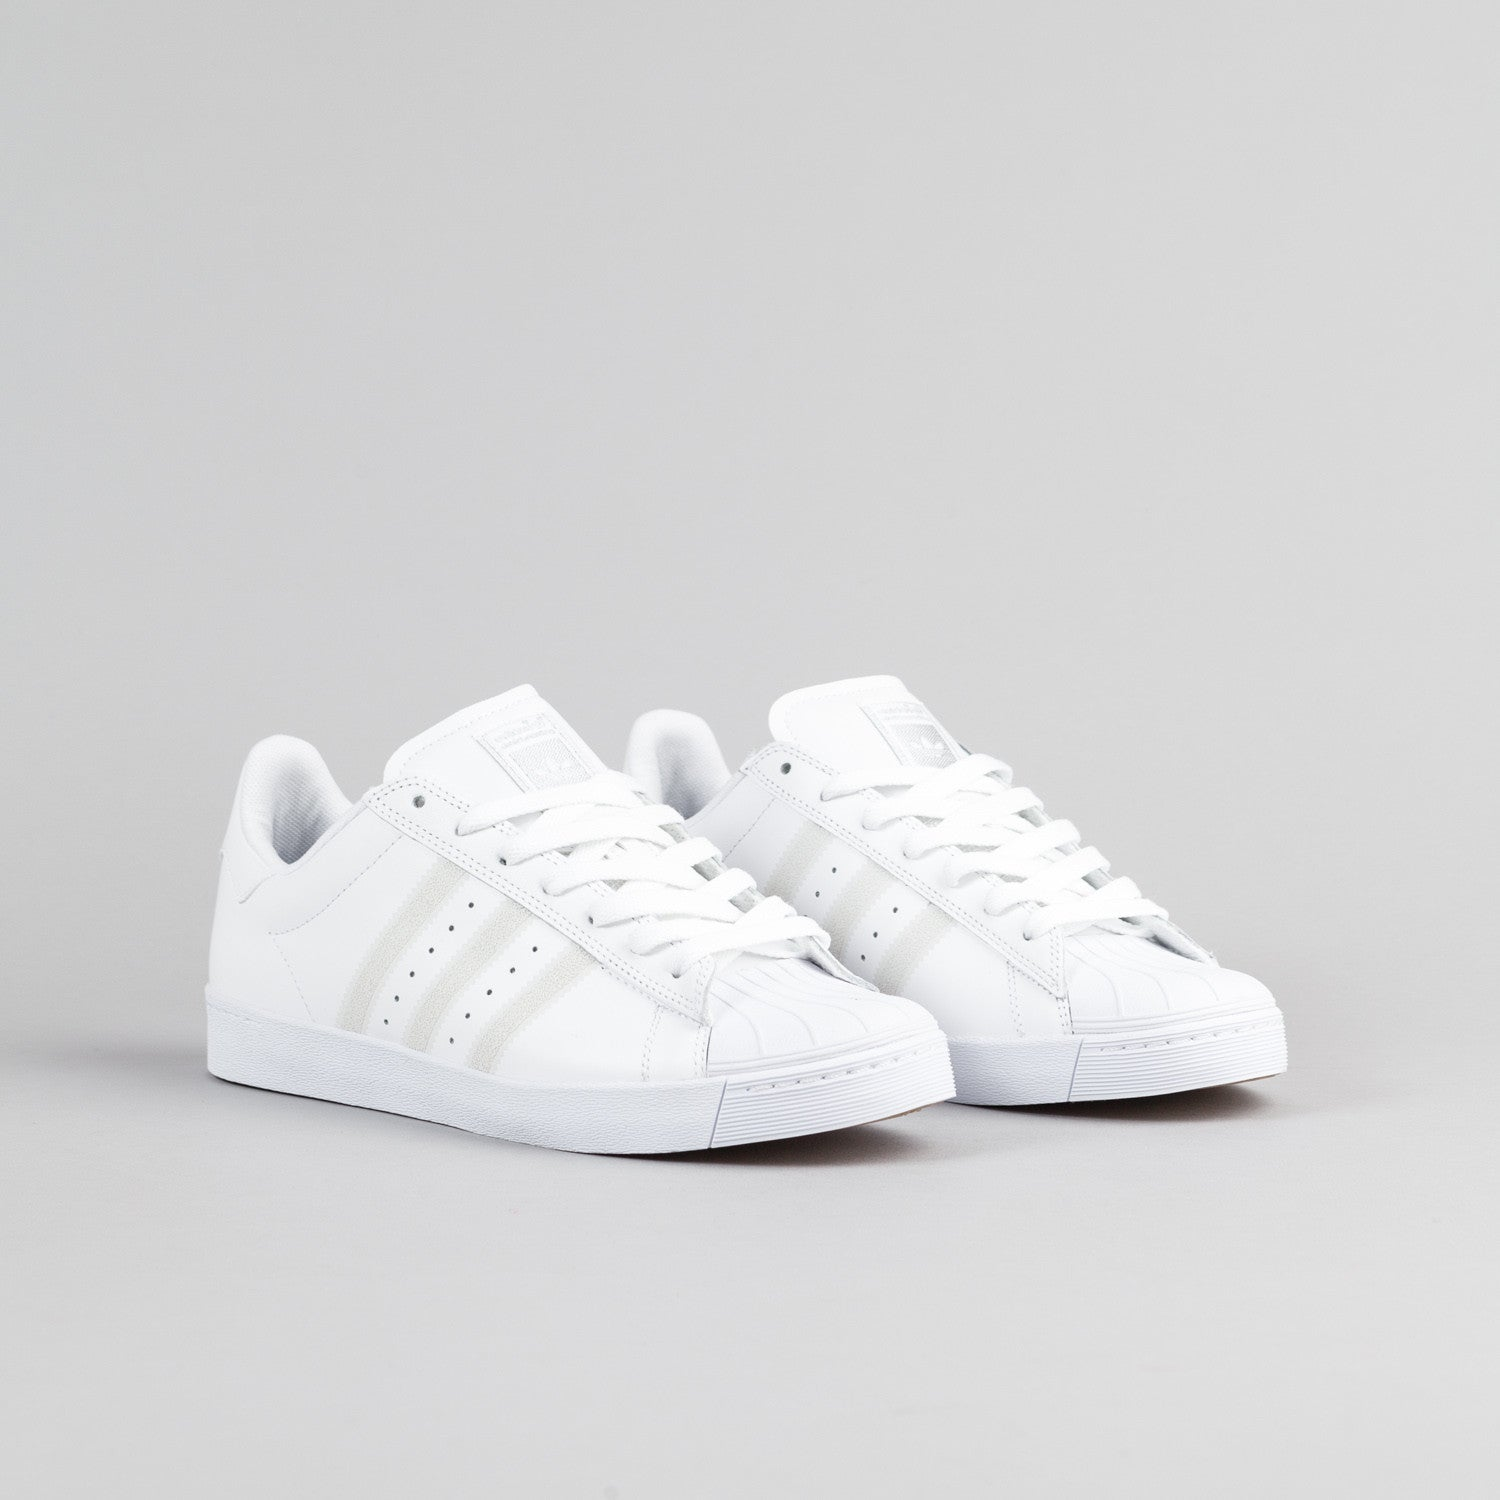 Cheap Adidas ADV, Superstar Cheap Adidas Australia